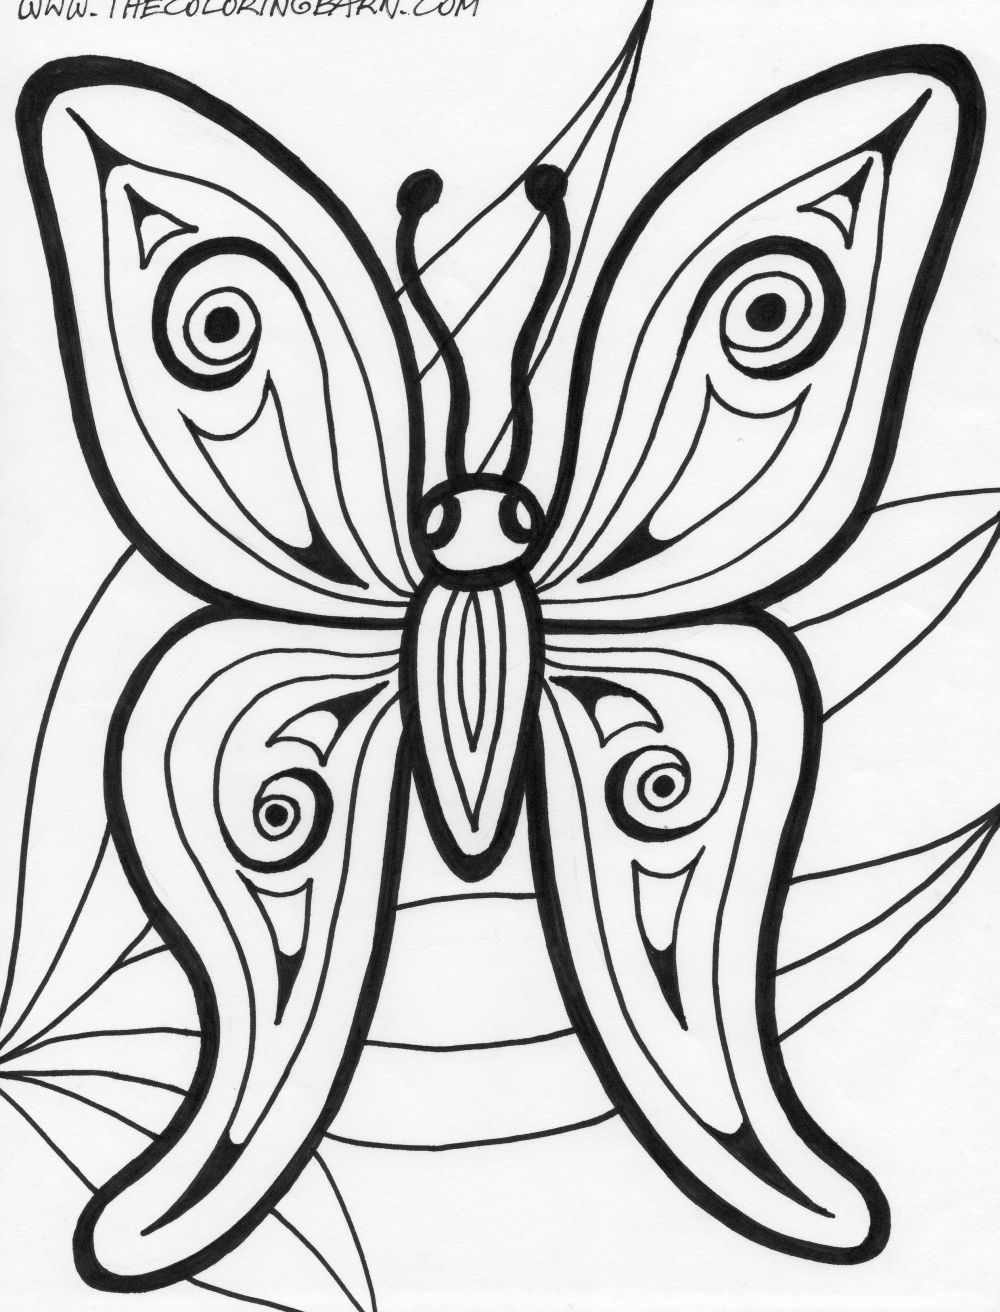 butterfly coloring template 8 best images of printable animal shapes templates free coloring butterfly template